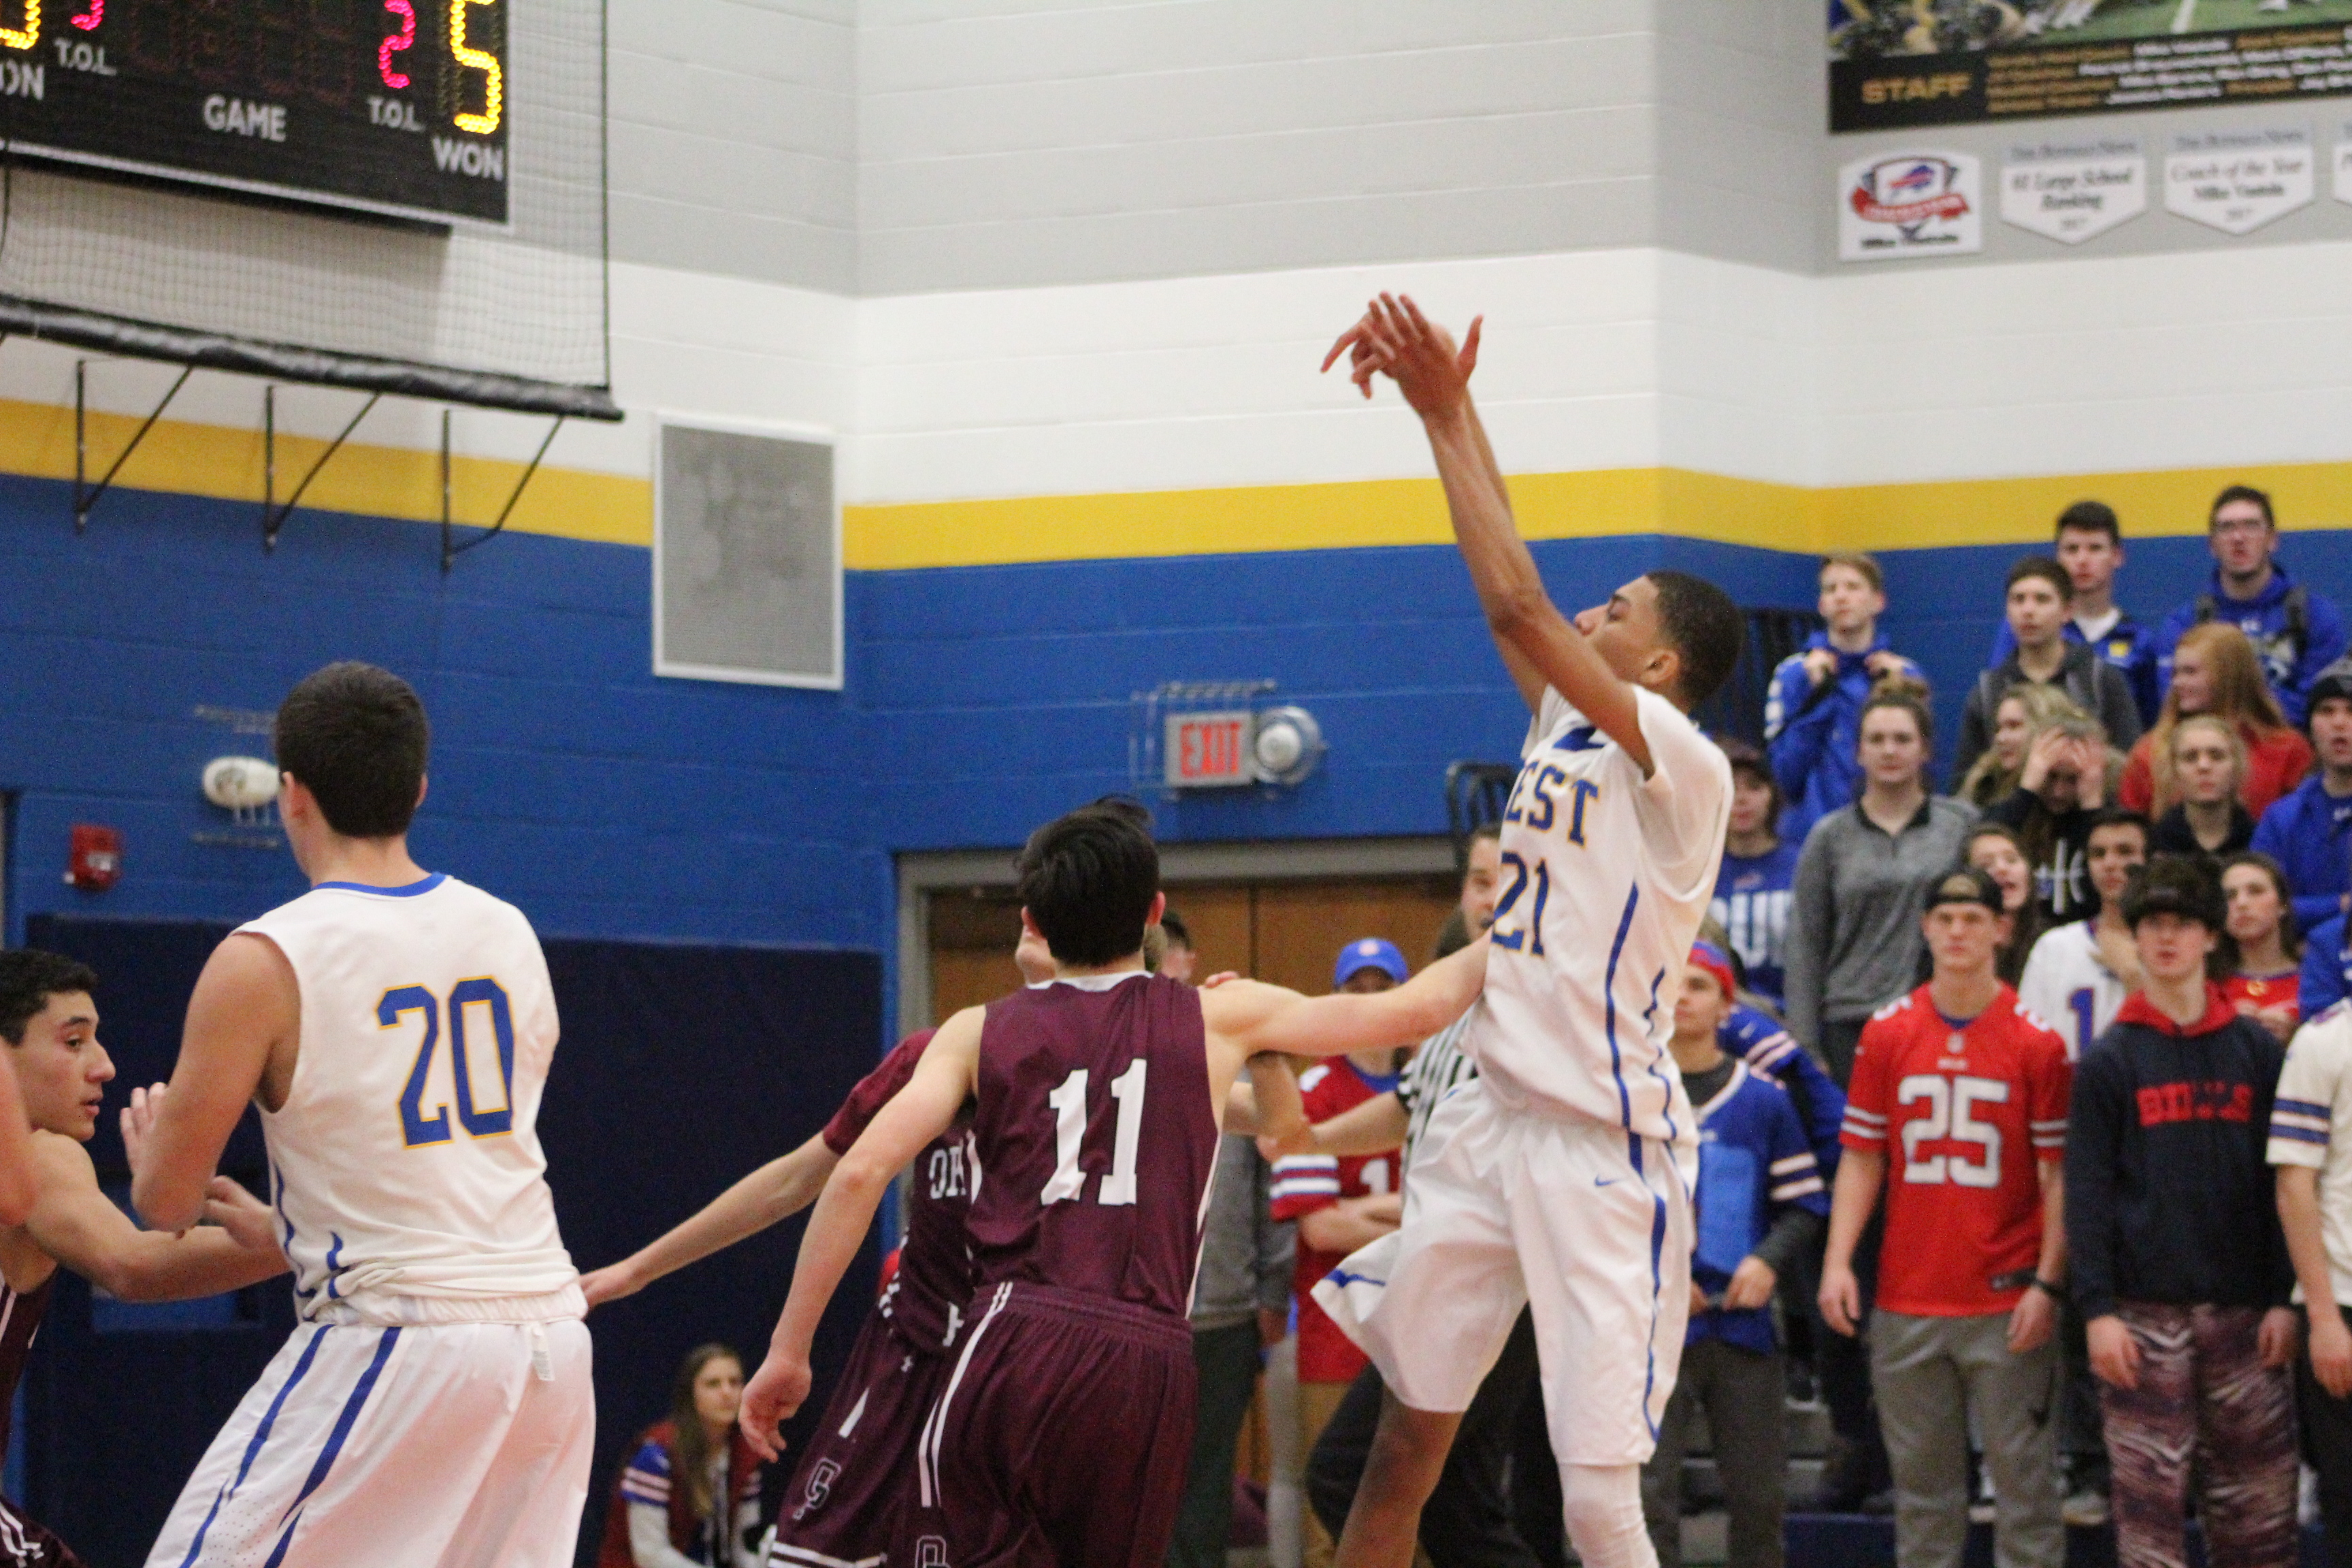 (Adrian Baugh drains a jumper for the Indians)